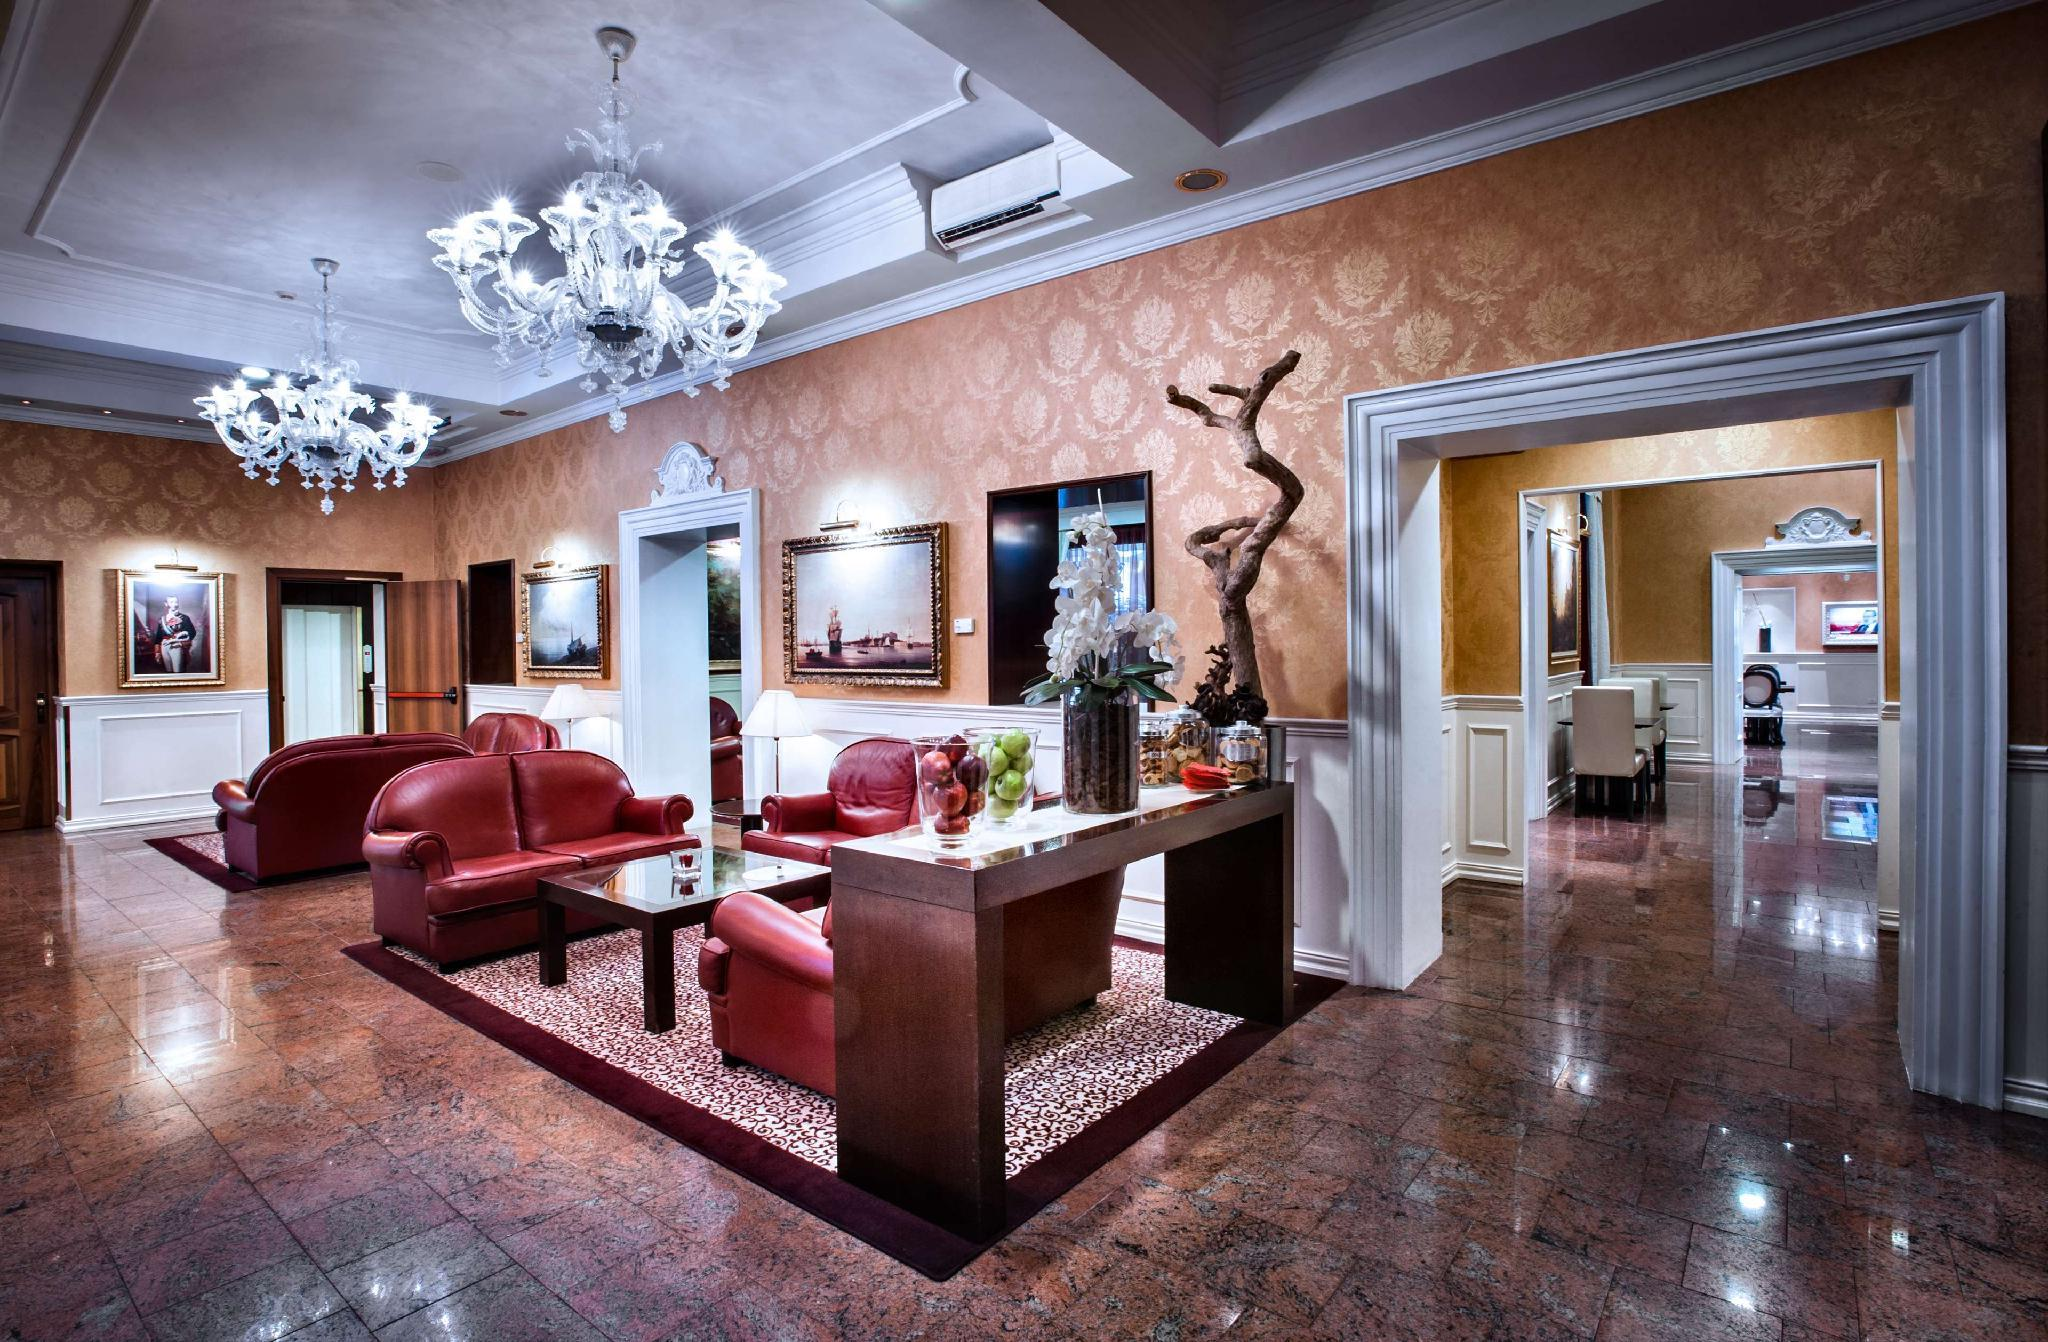 Spazio Italiano San Francisco best western plus hotel felice casati in milan - room deals